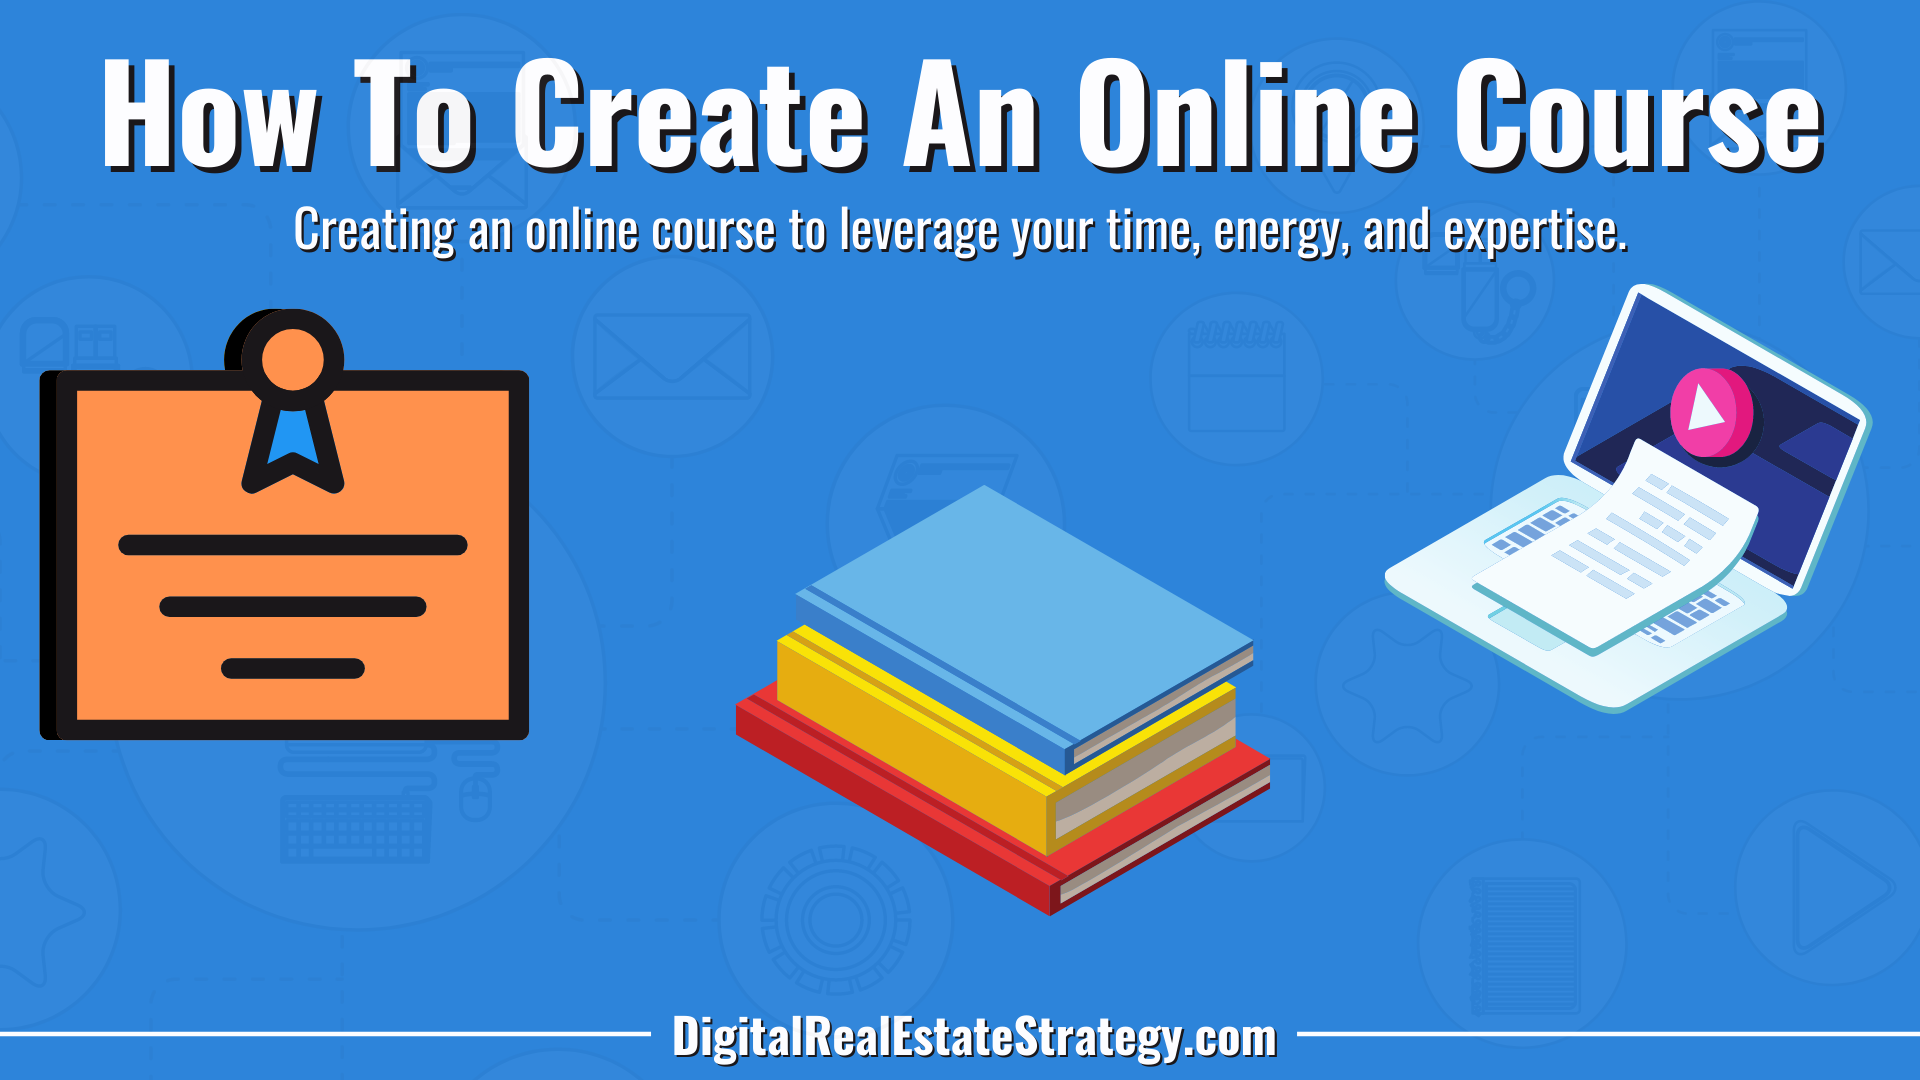 Jerome Lewis - Philadelphia - How To Create An Online Course